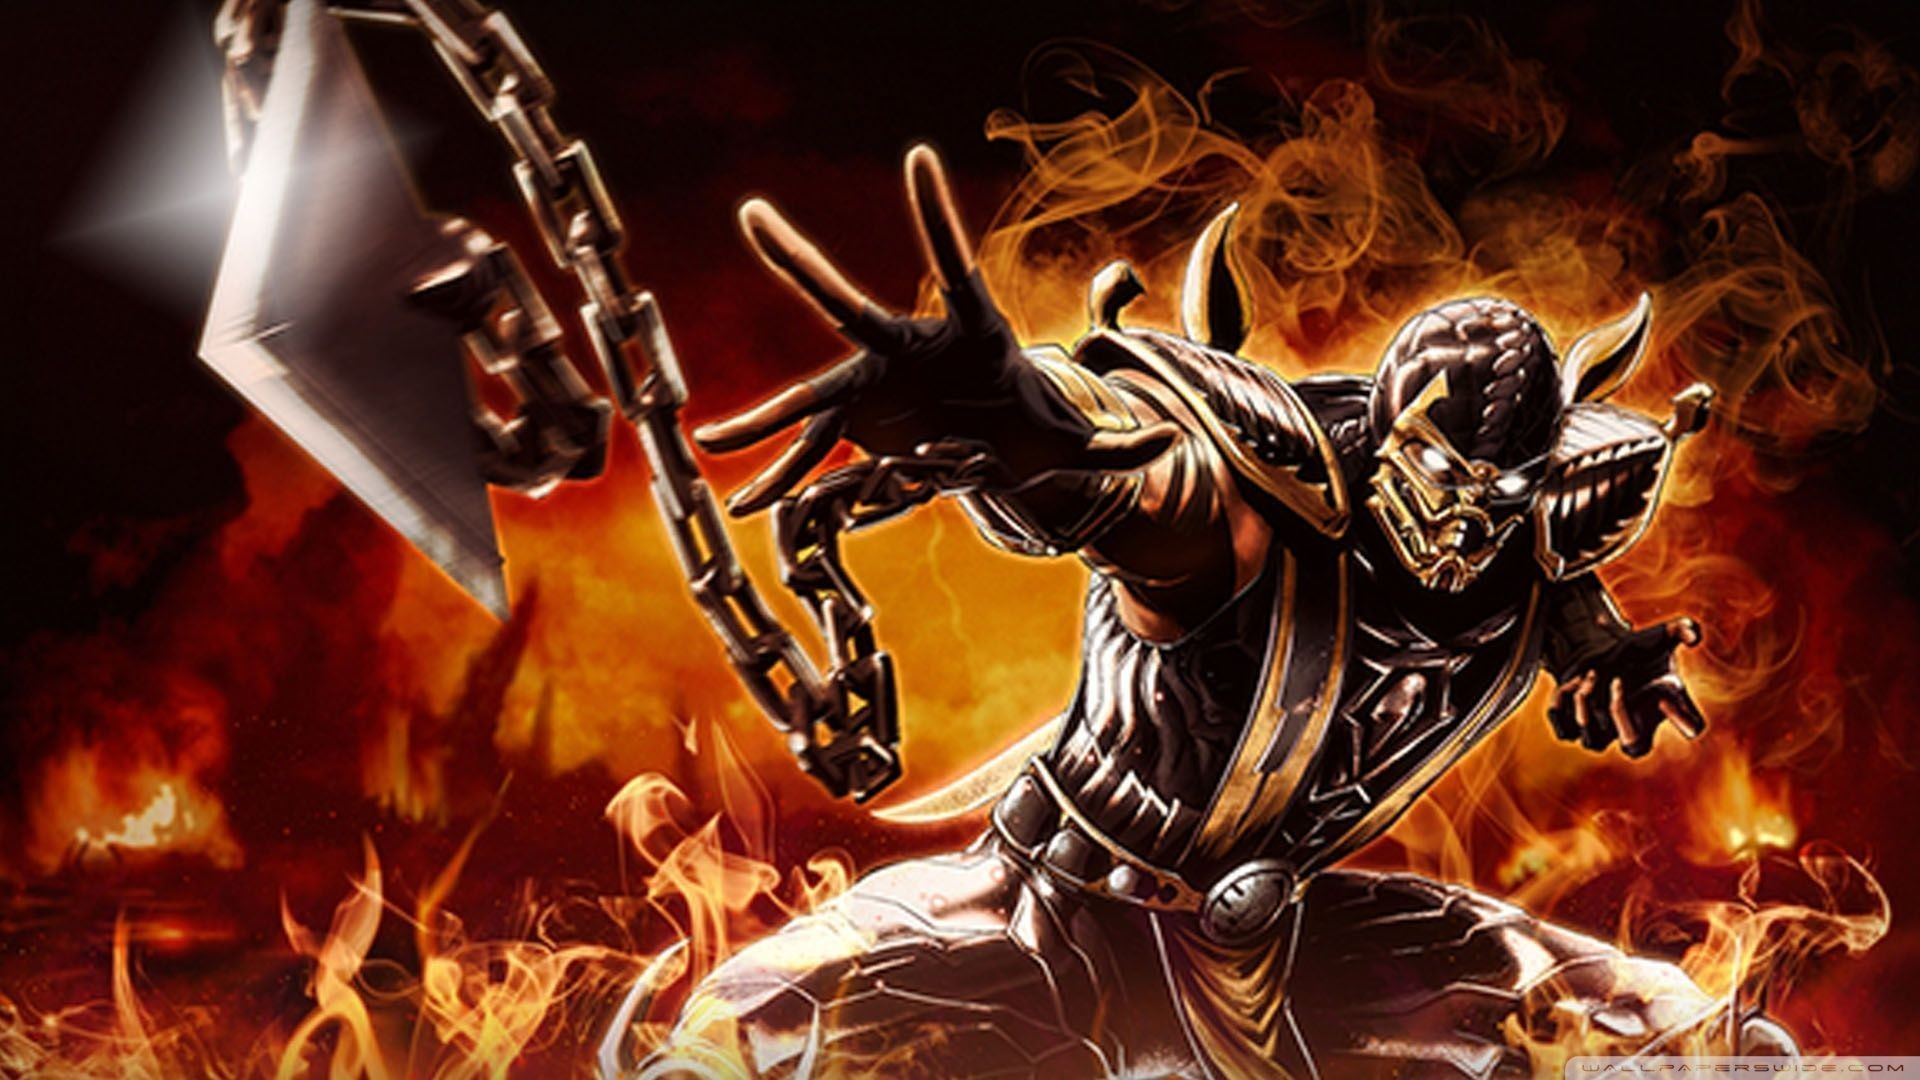 71 Mortal Kombat X Wallpaper Hd